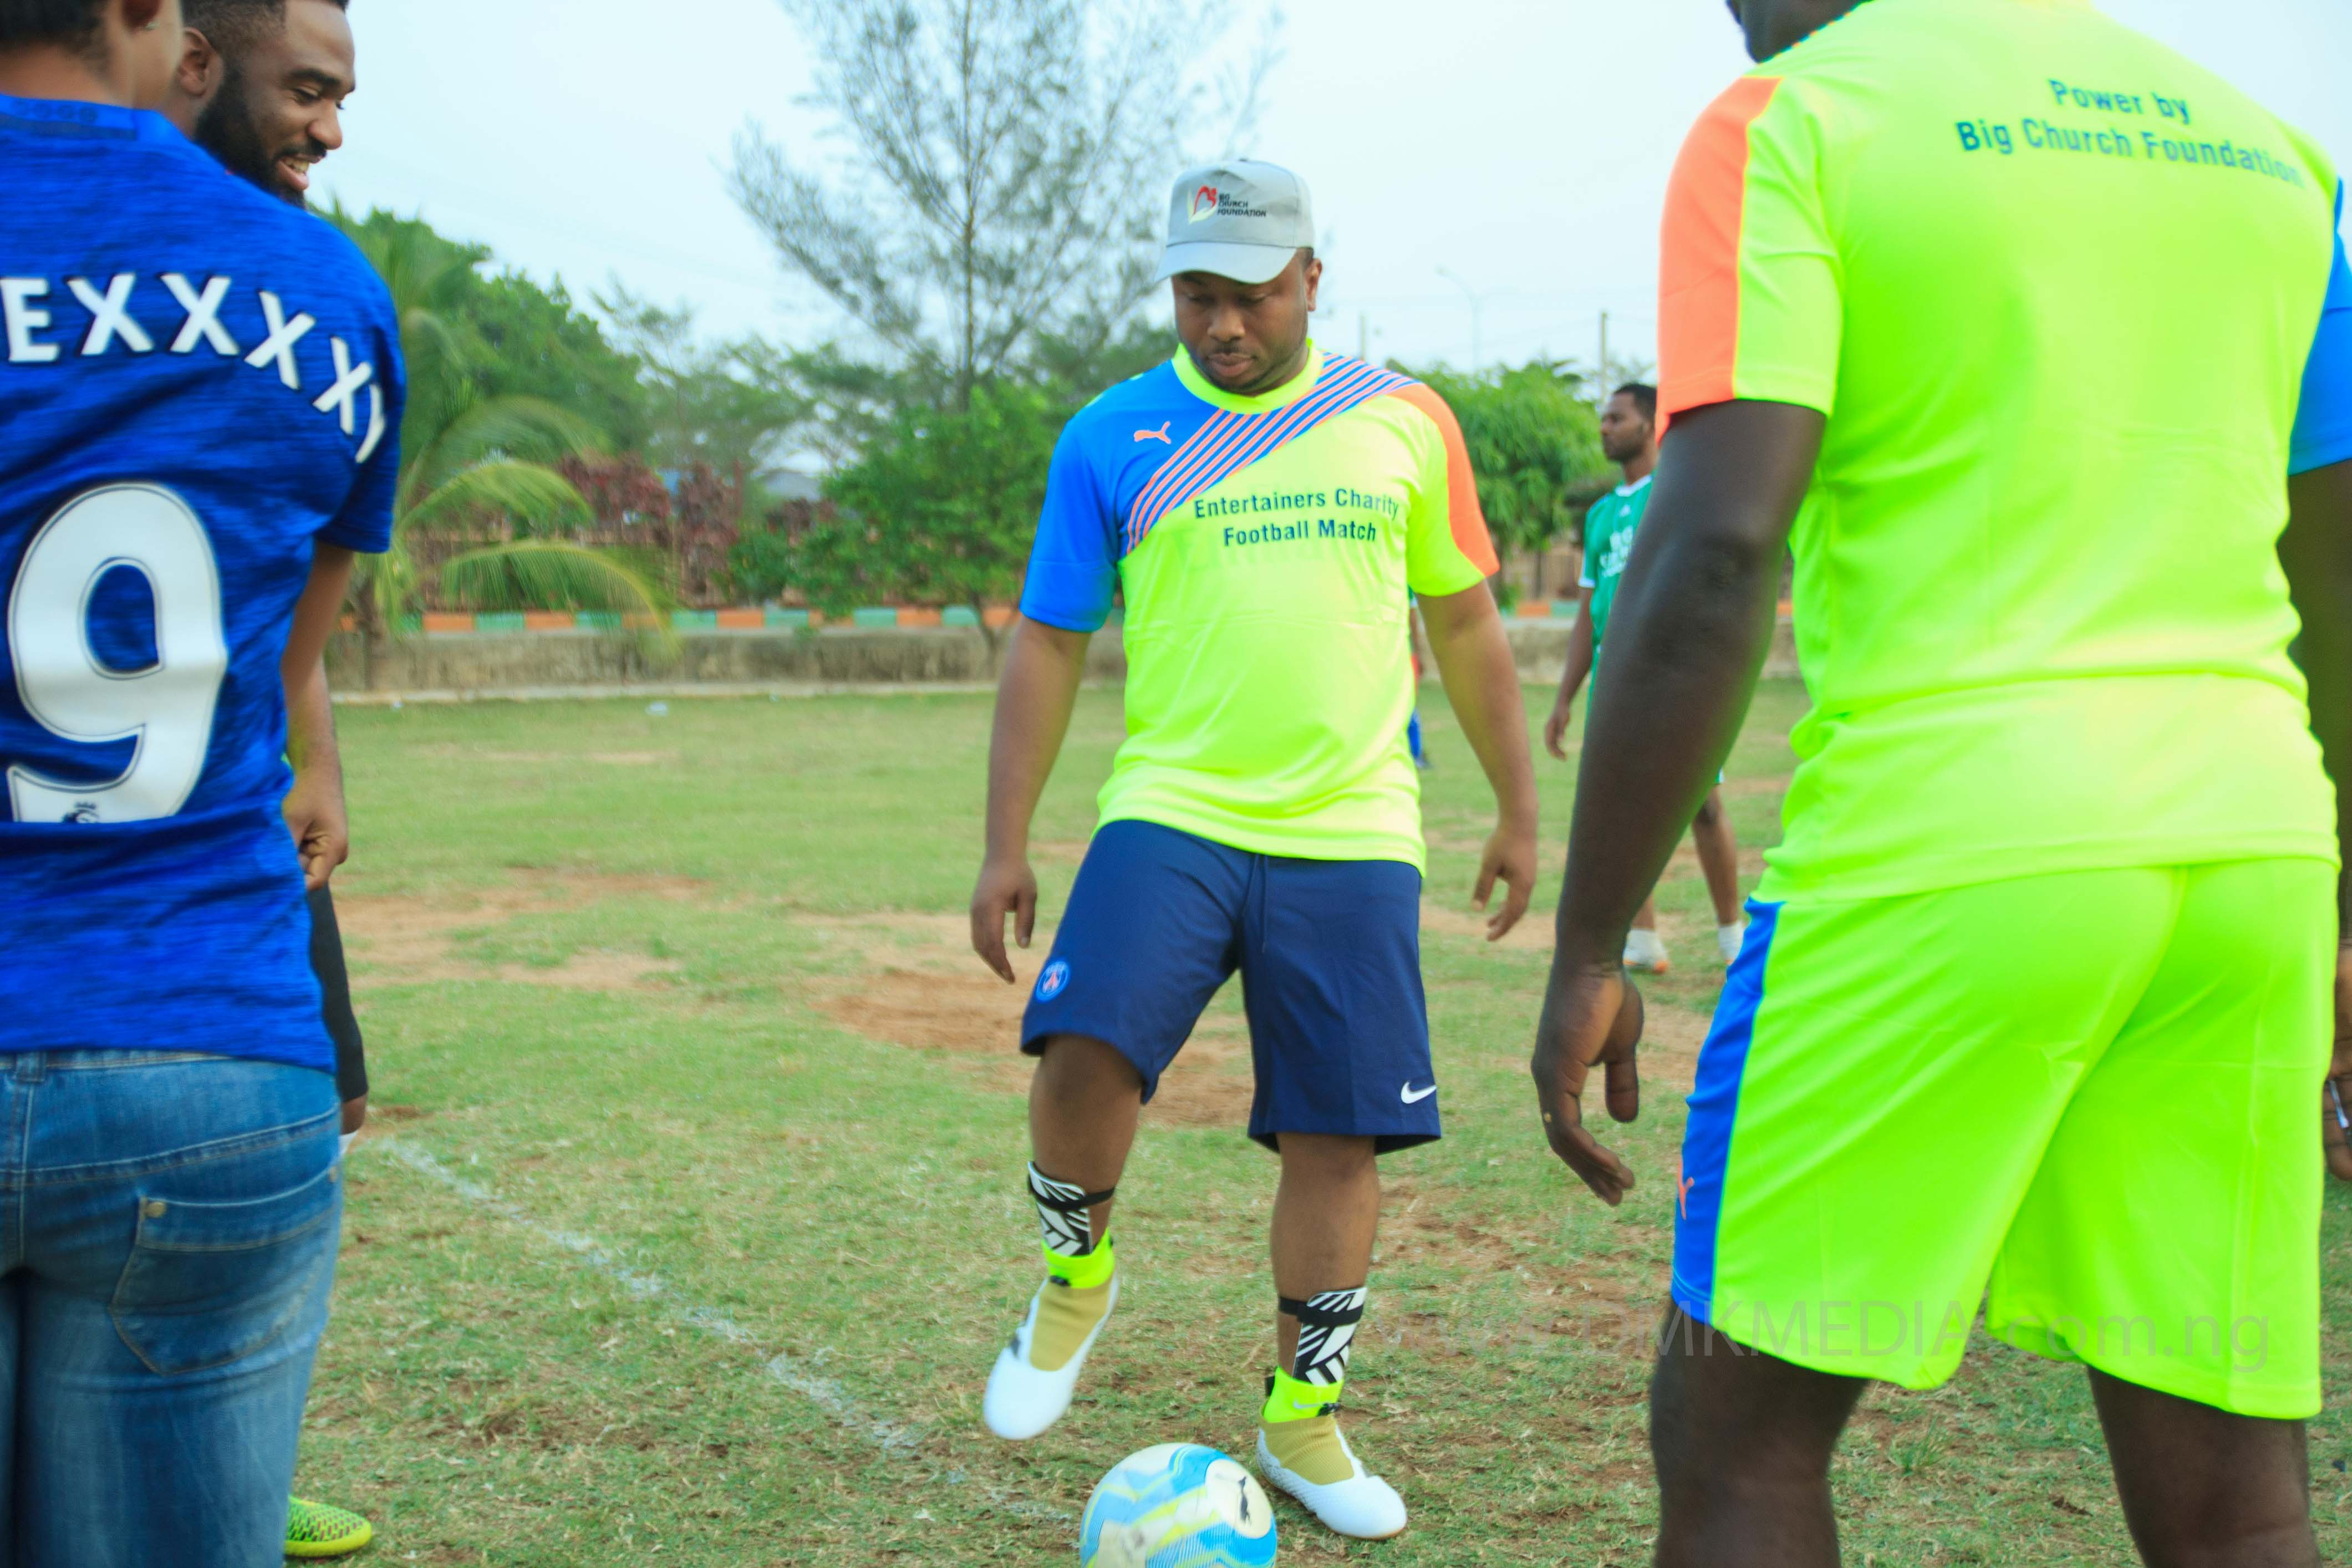 big-church-foundation-entertainers-charity-football-match-19